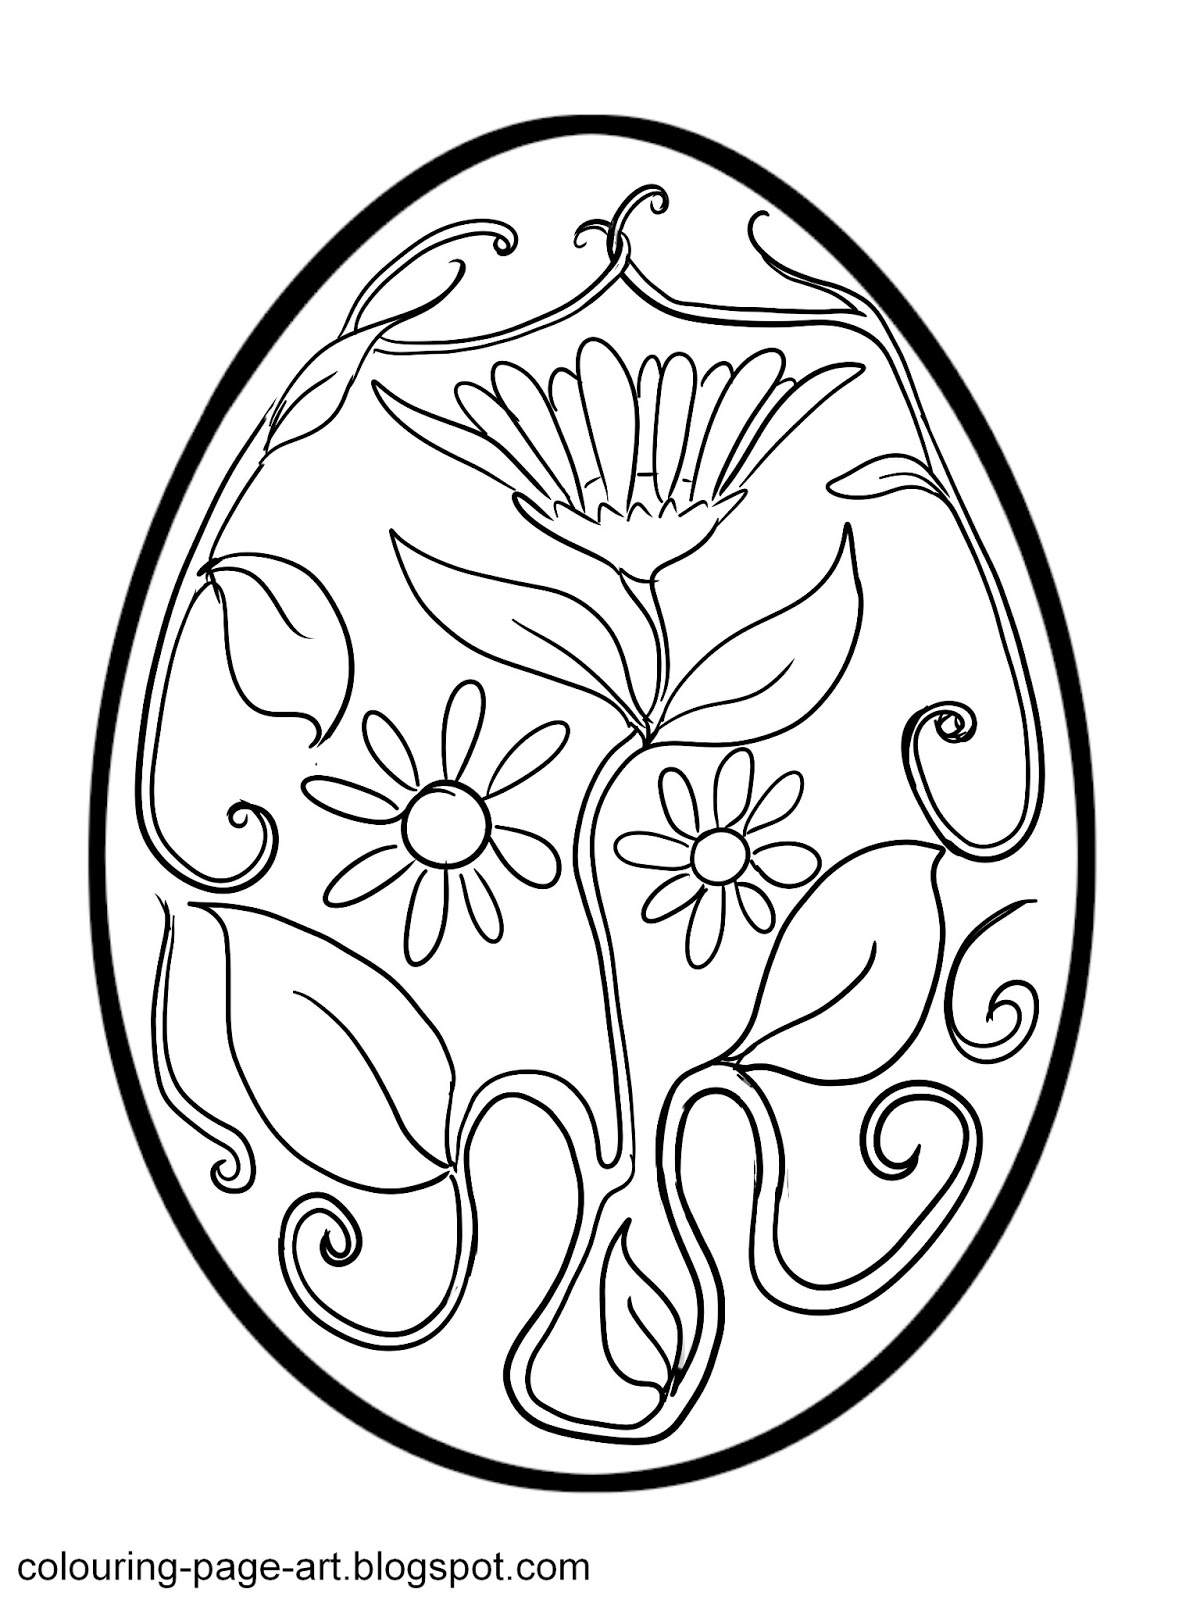 Multiple Hair Coloring: Colouring Page Art: Symbol & Abstract Easter Eggs